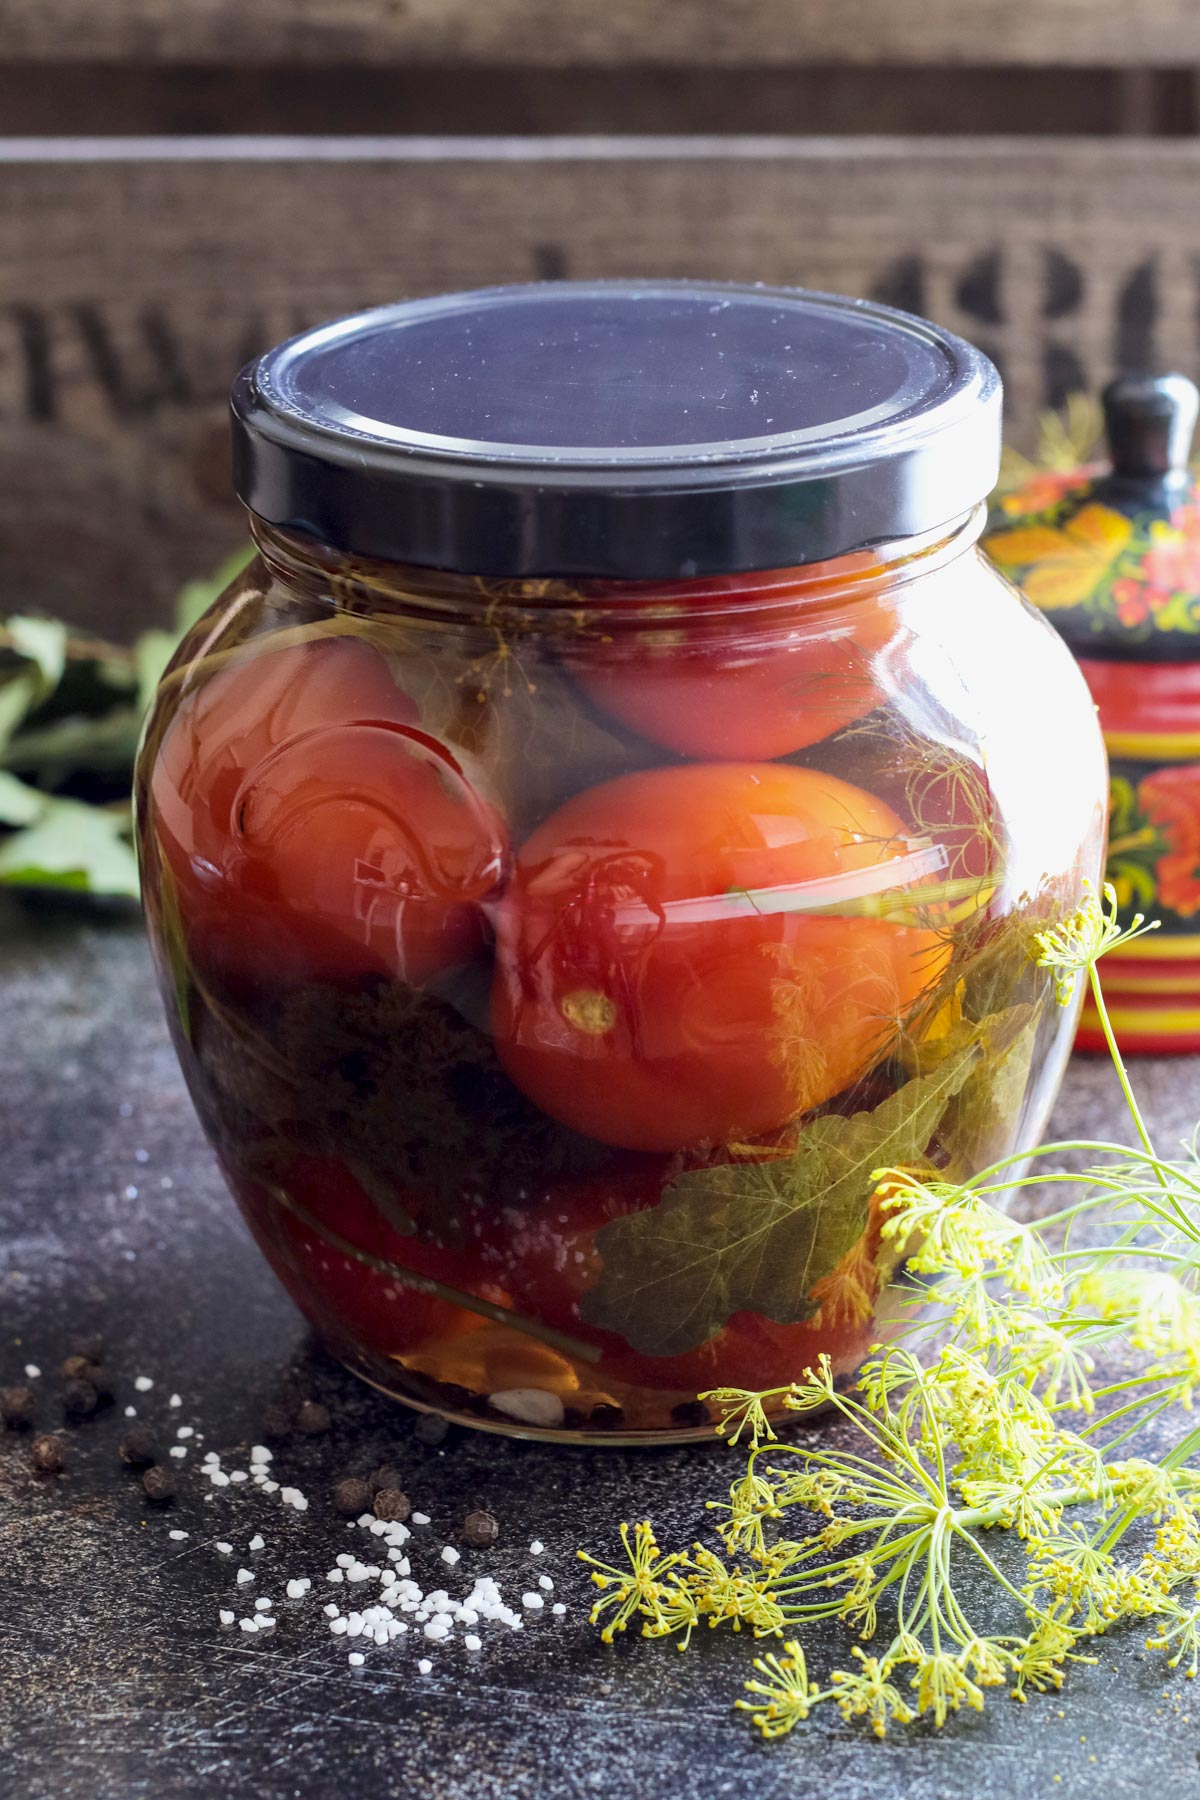 Sealed jar with Russian pickled tomatoes.